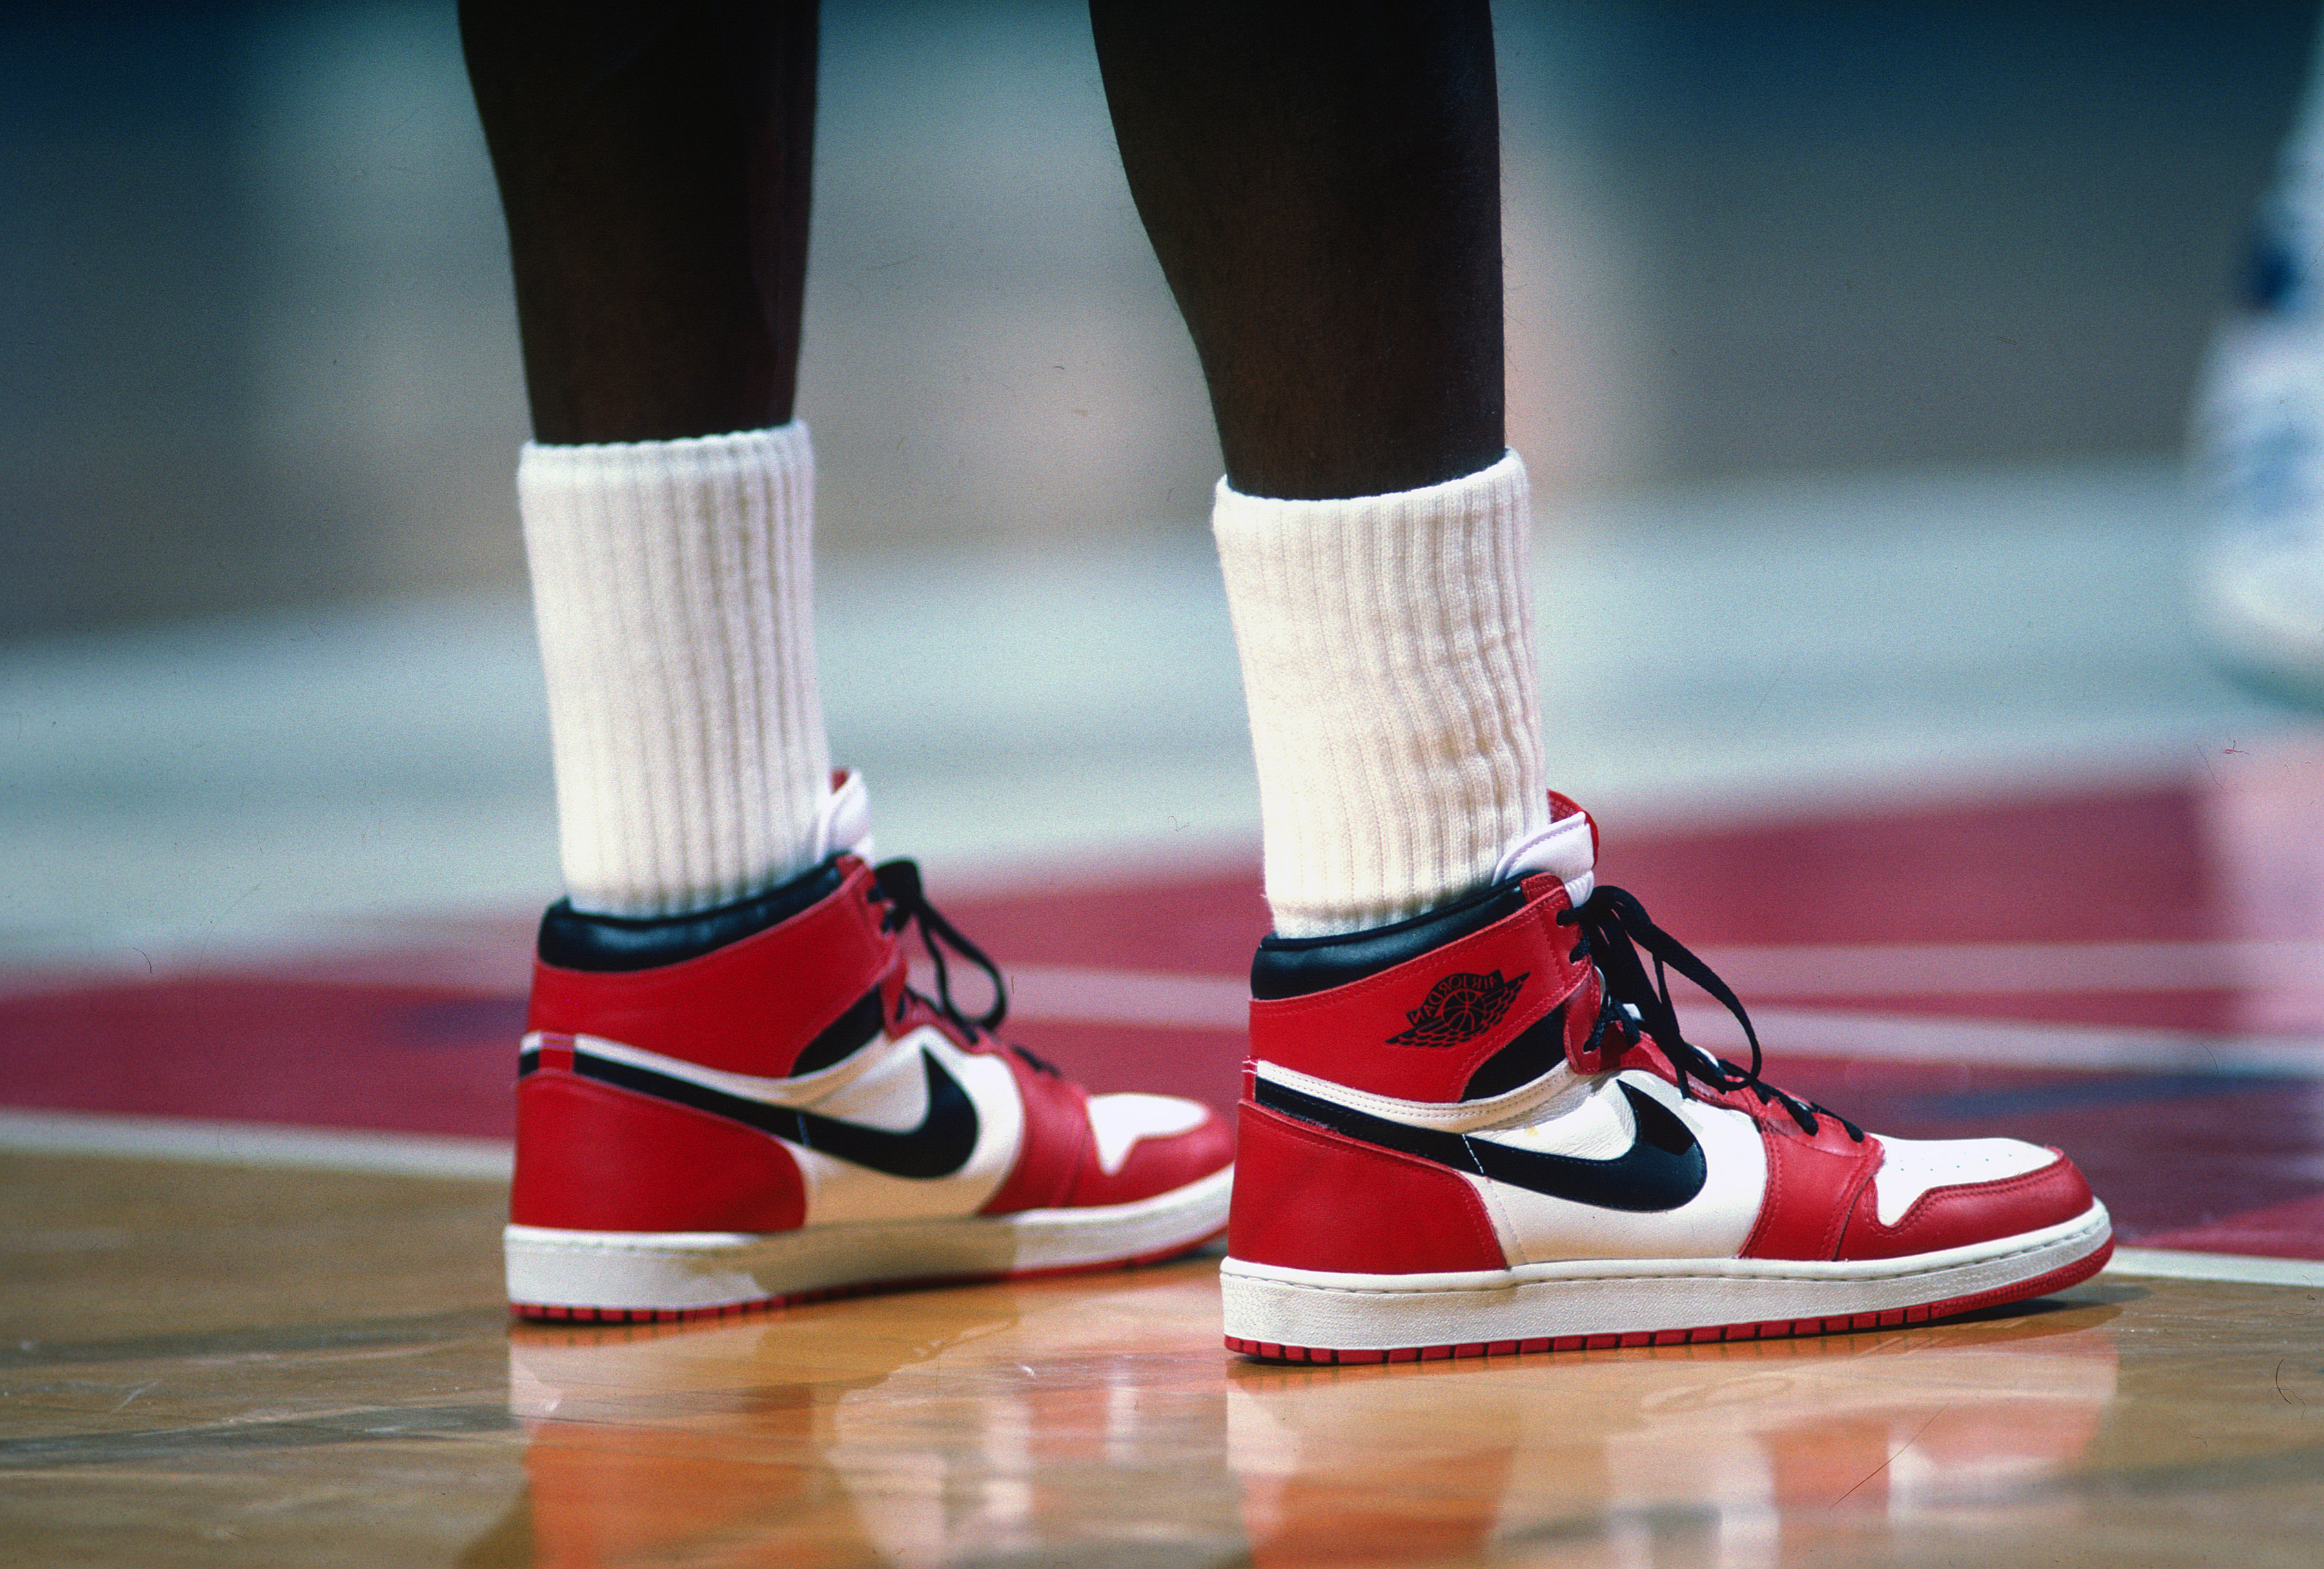 10 Things You Didn't Know About Iconic Sneakers